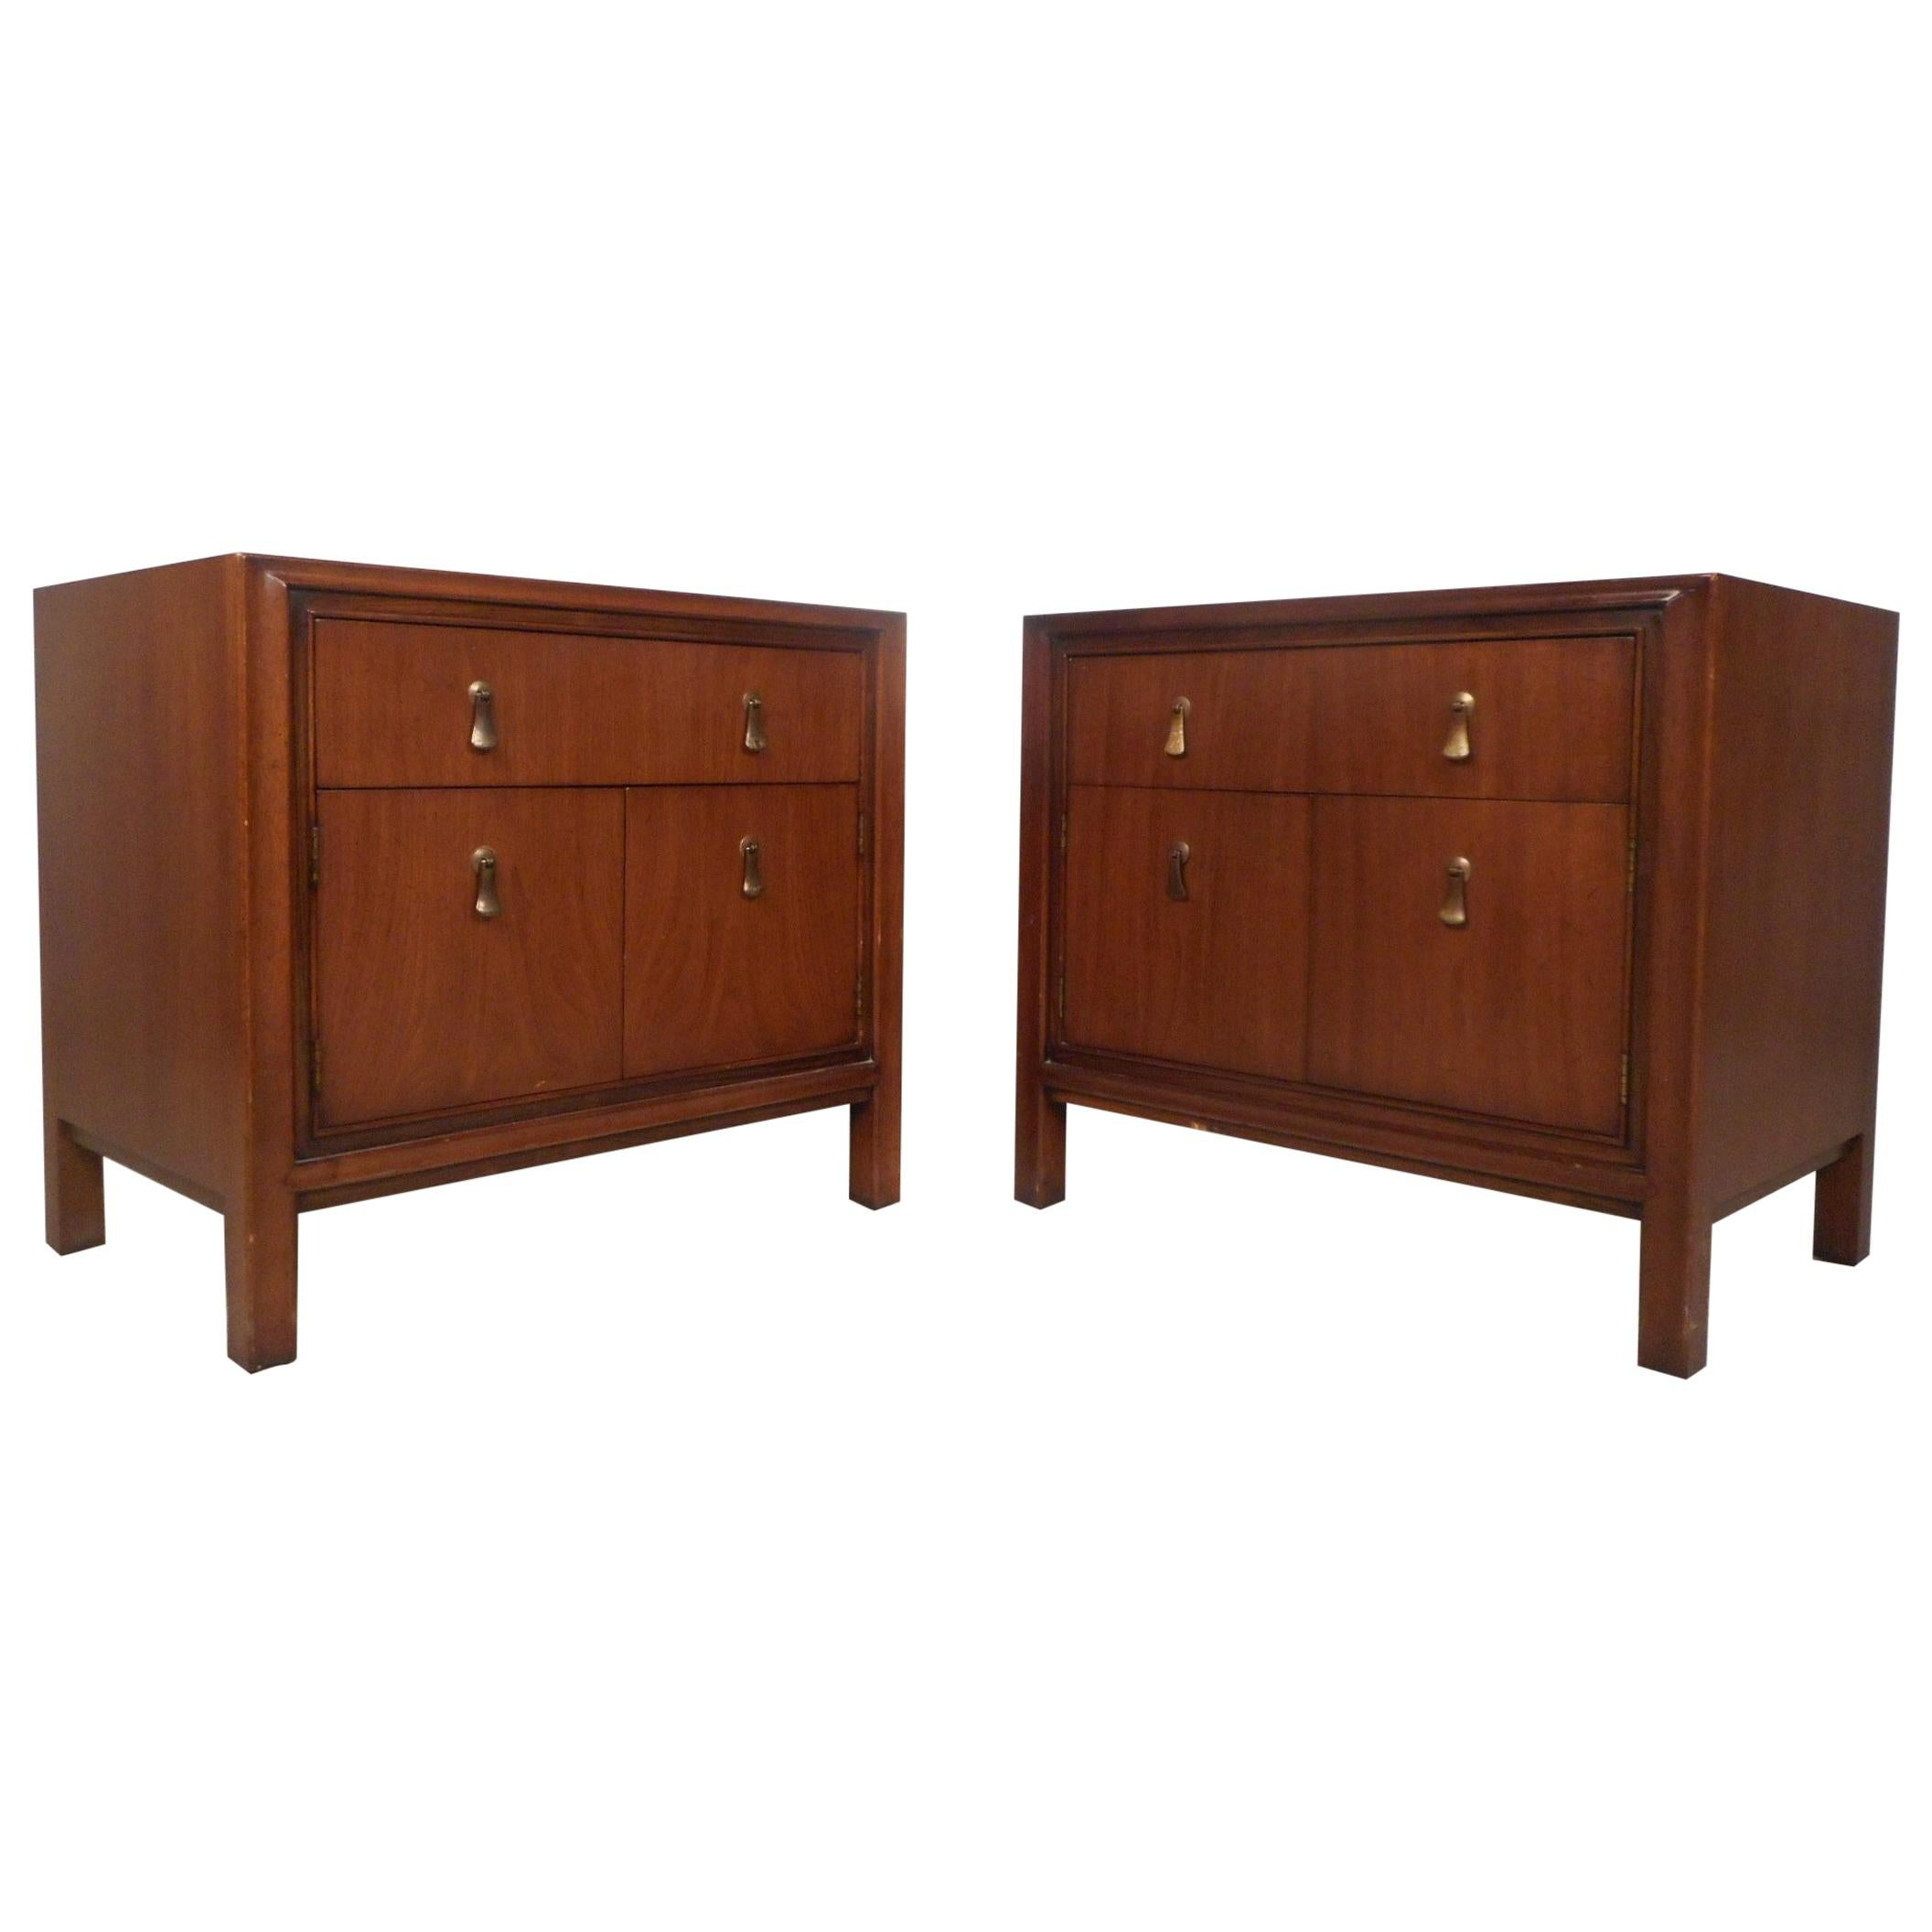 Mount Airy Furniture Company Storage Cabinets Tables More 9 For At 1stdibs